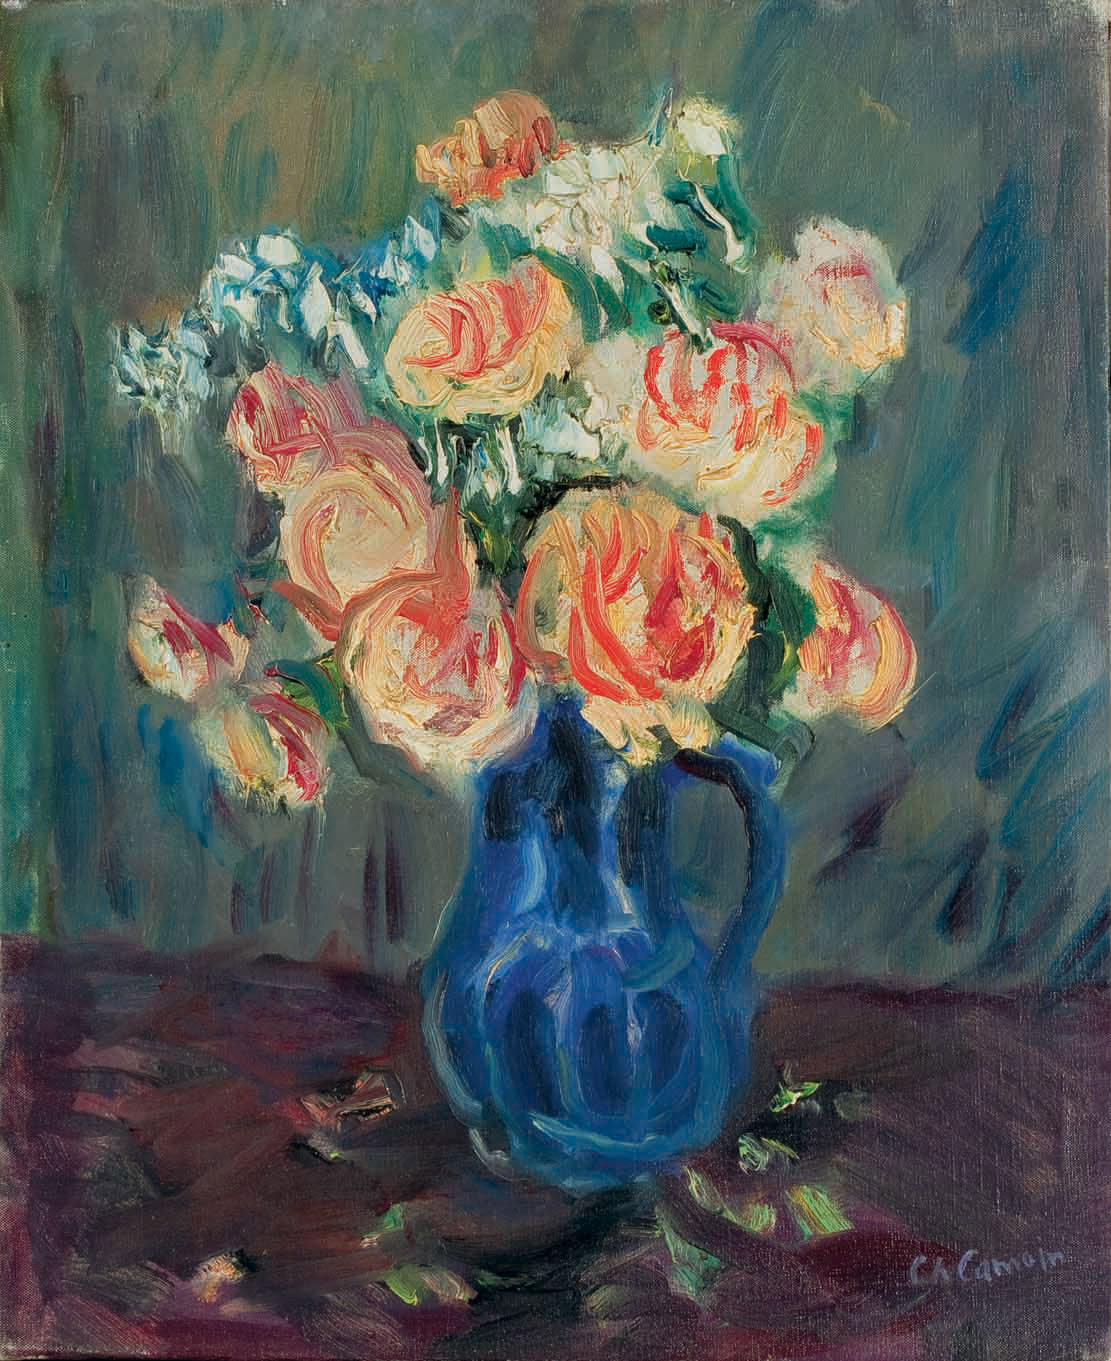 CHARLES CAMOIN (1879-1965)